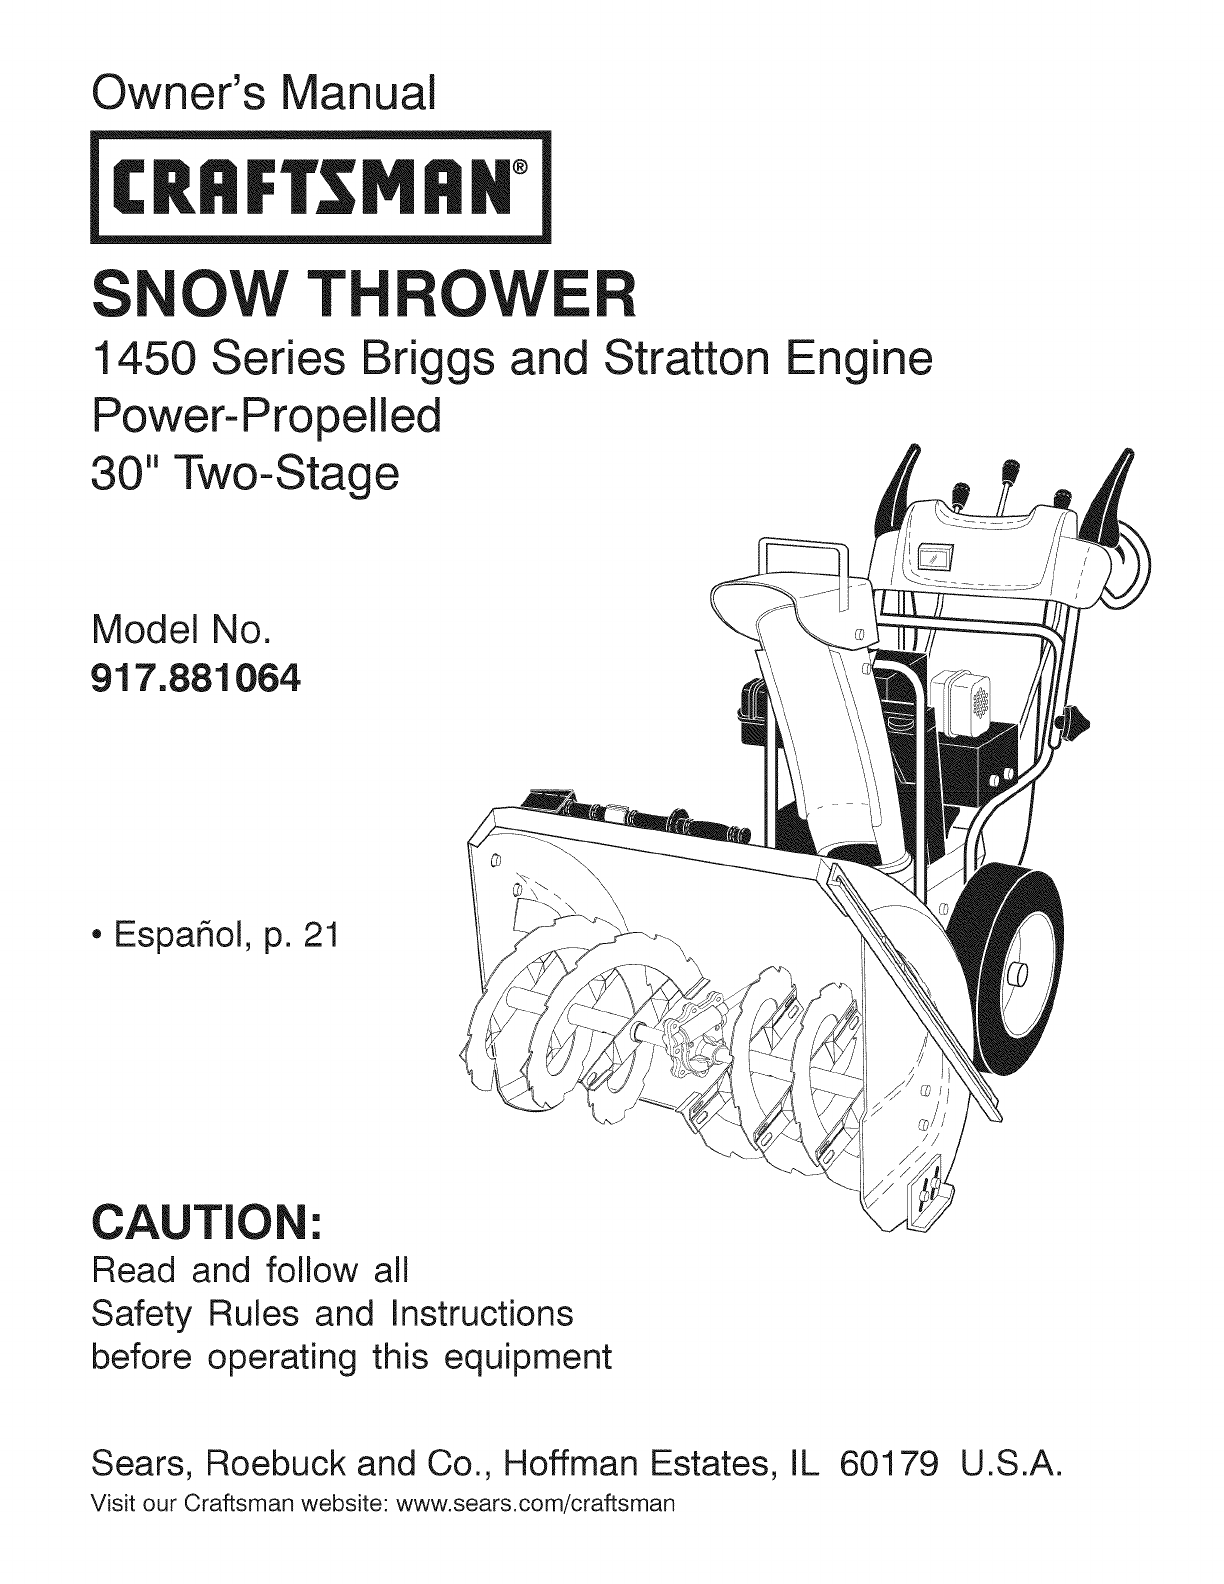 craftsman snow blower 917 881064 user guide manualsonline com rh kitchen manualsonline com Craftsman 22 Inch Snow Blower Manual craftsman snowblower manual